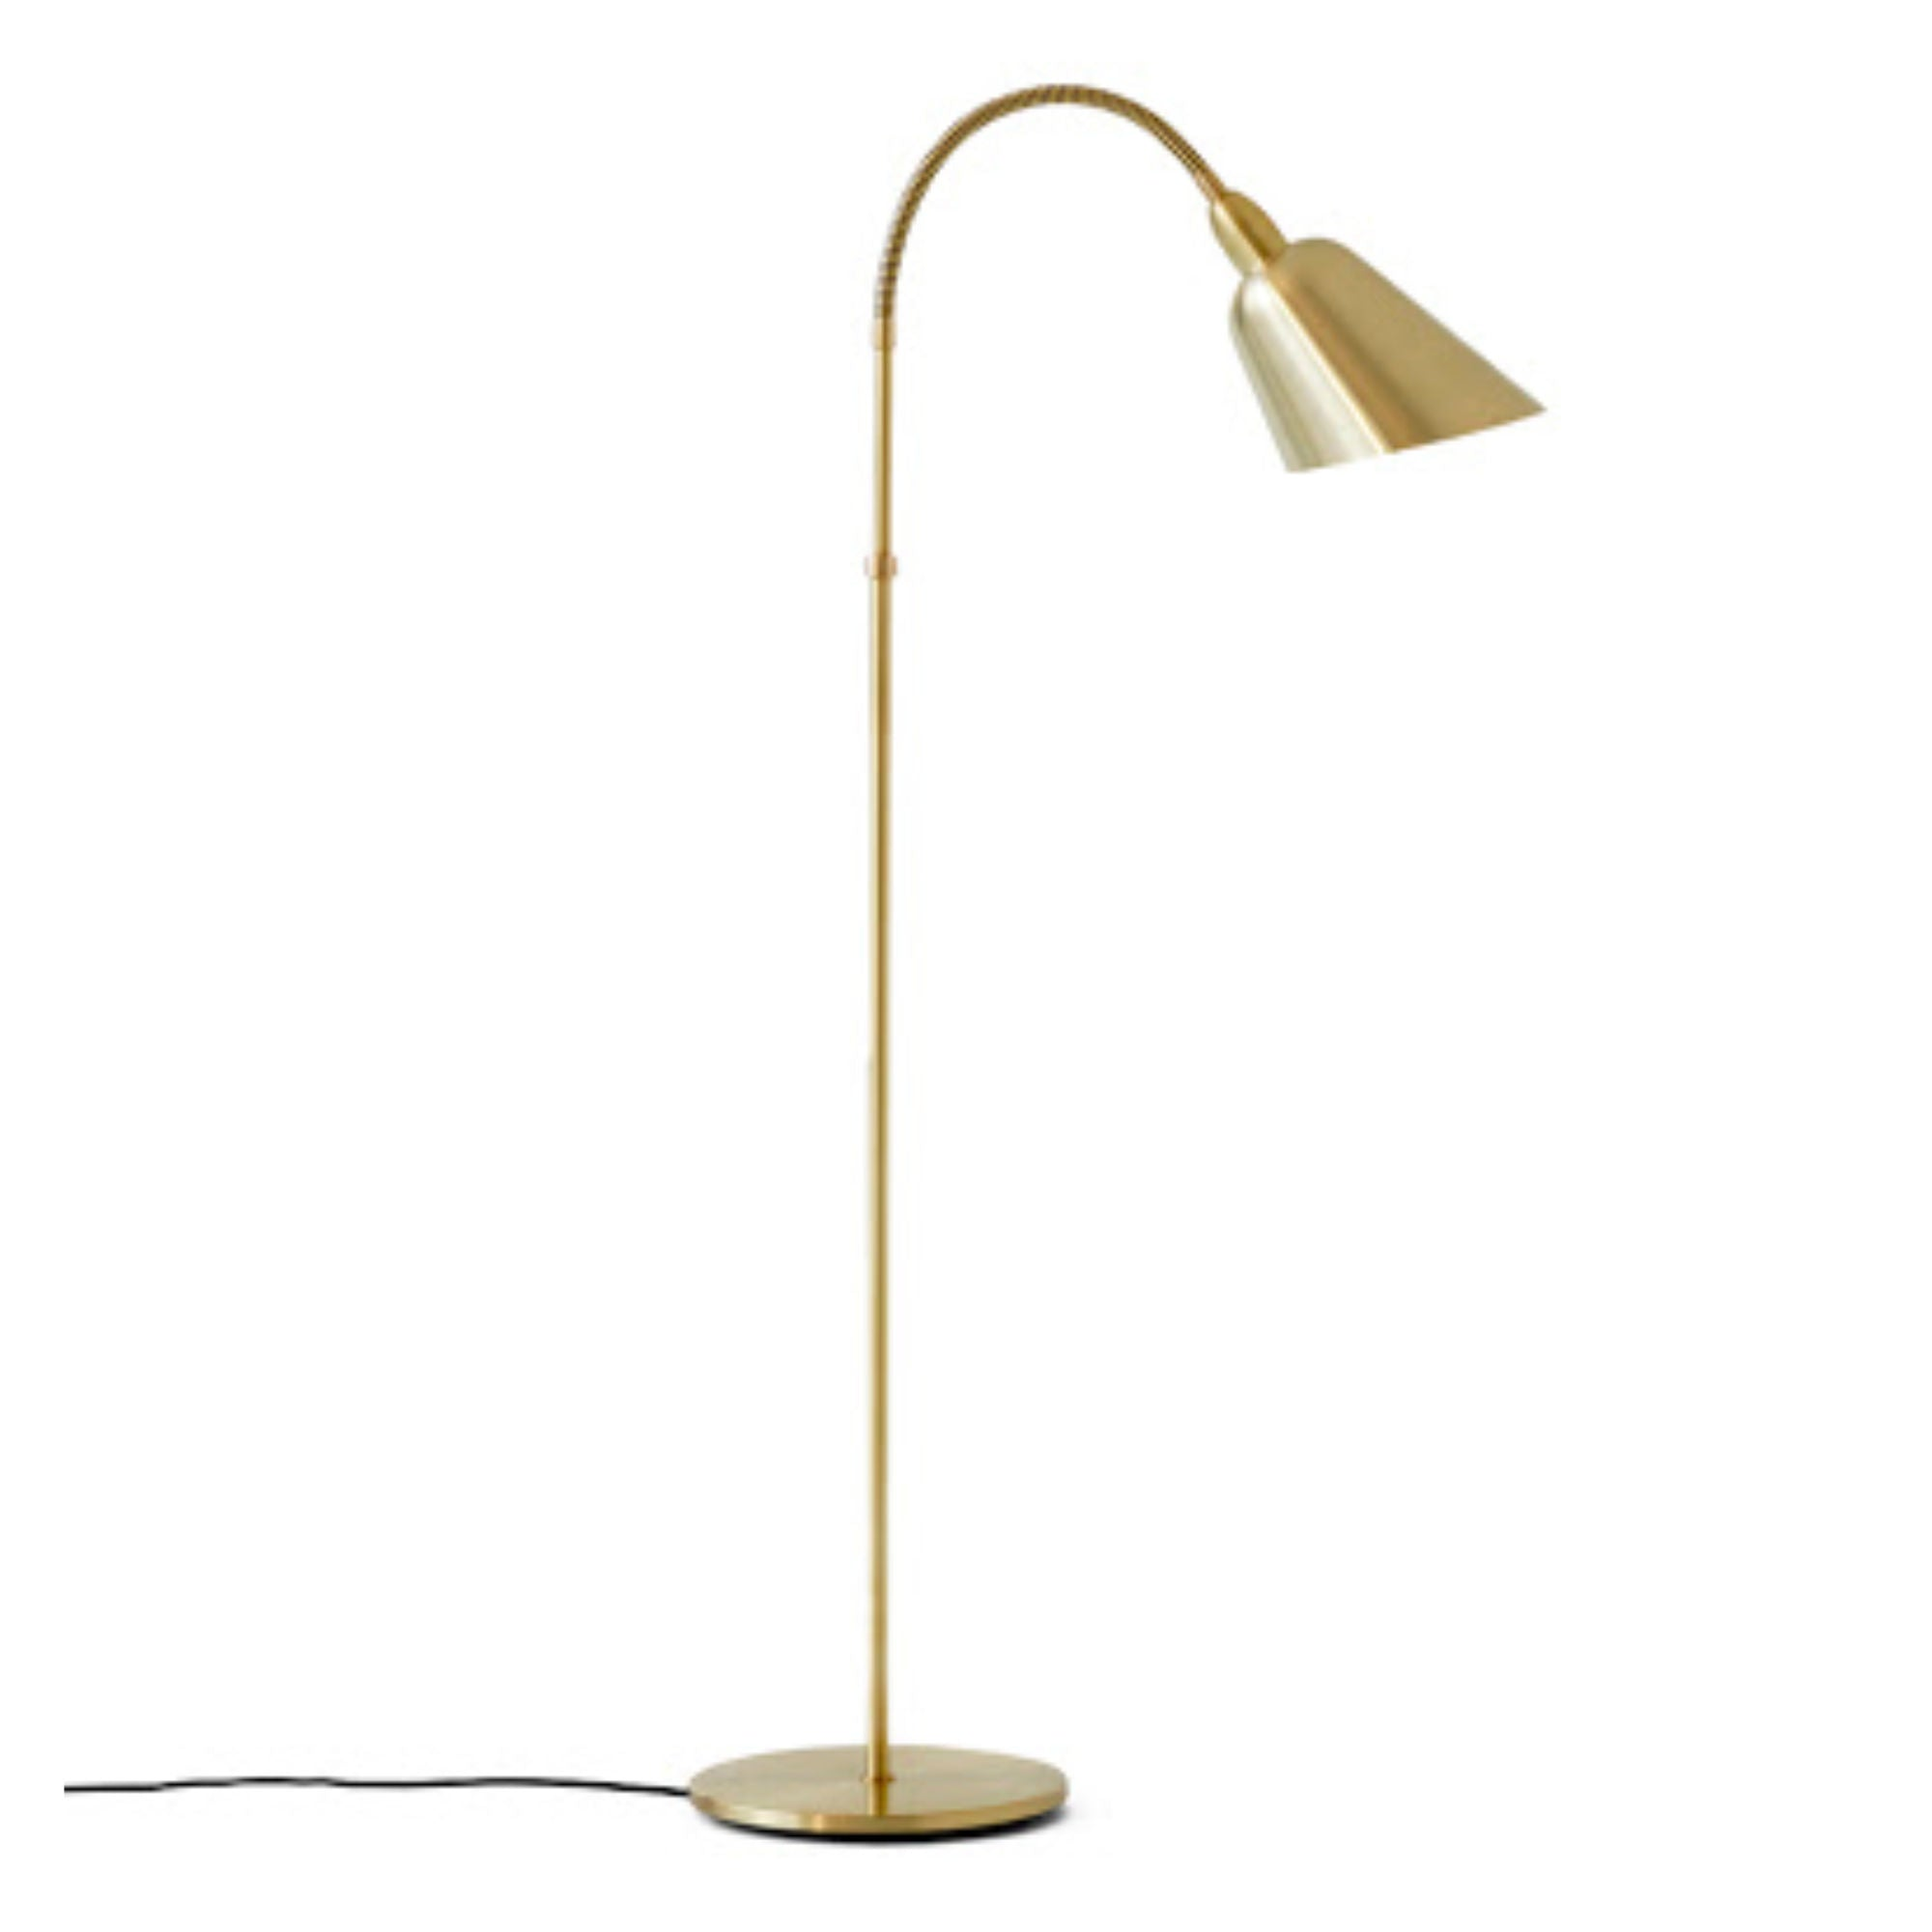 &Tradition AJ7 Bellevue Floor Lamp , Brass